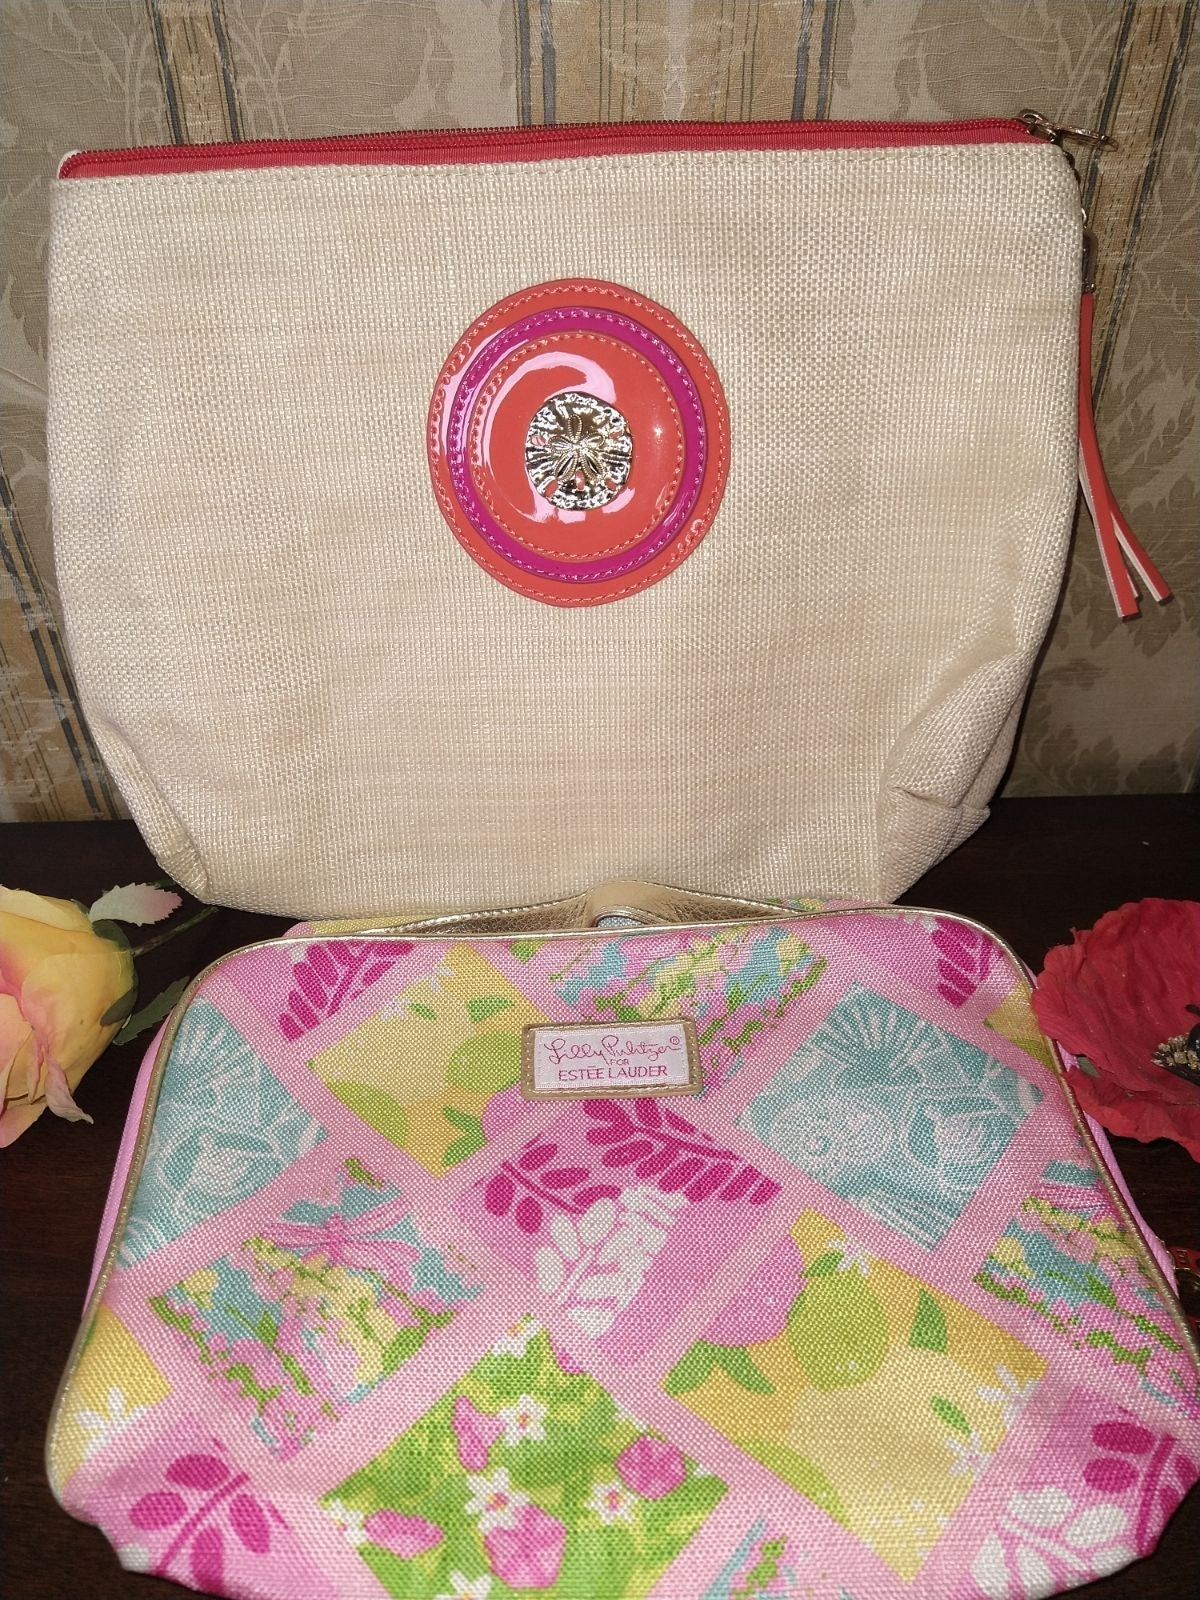 Bundle Of Two Makeup/ Cosmetic Bags